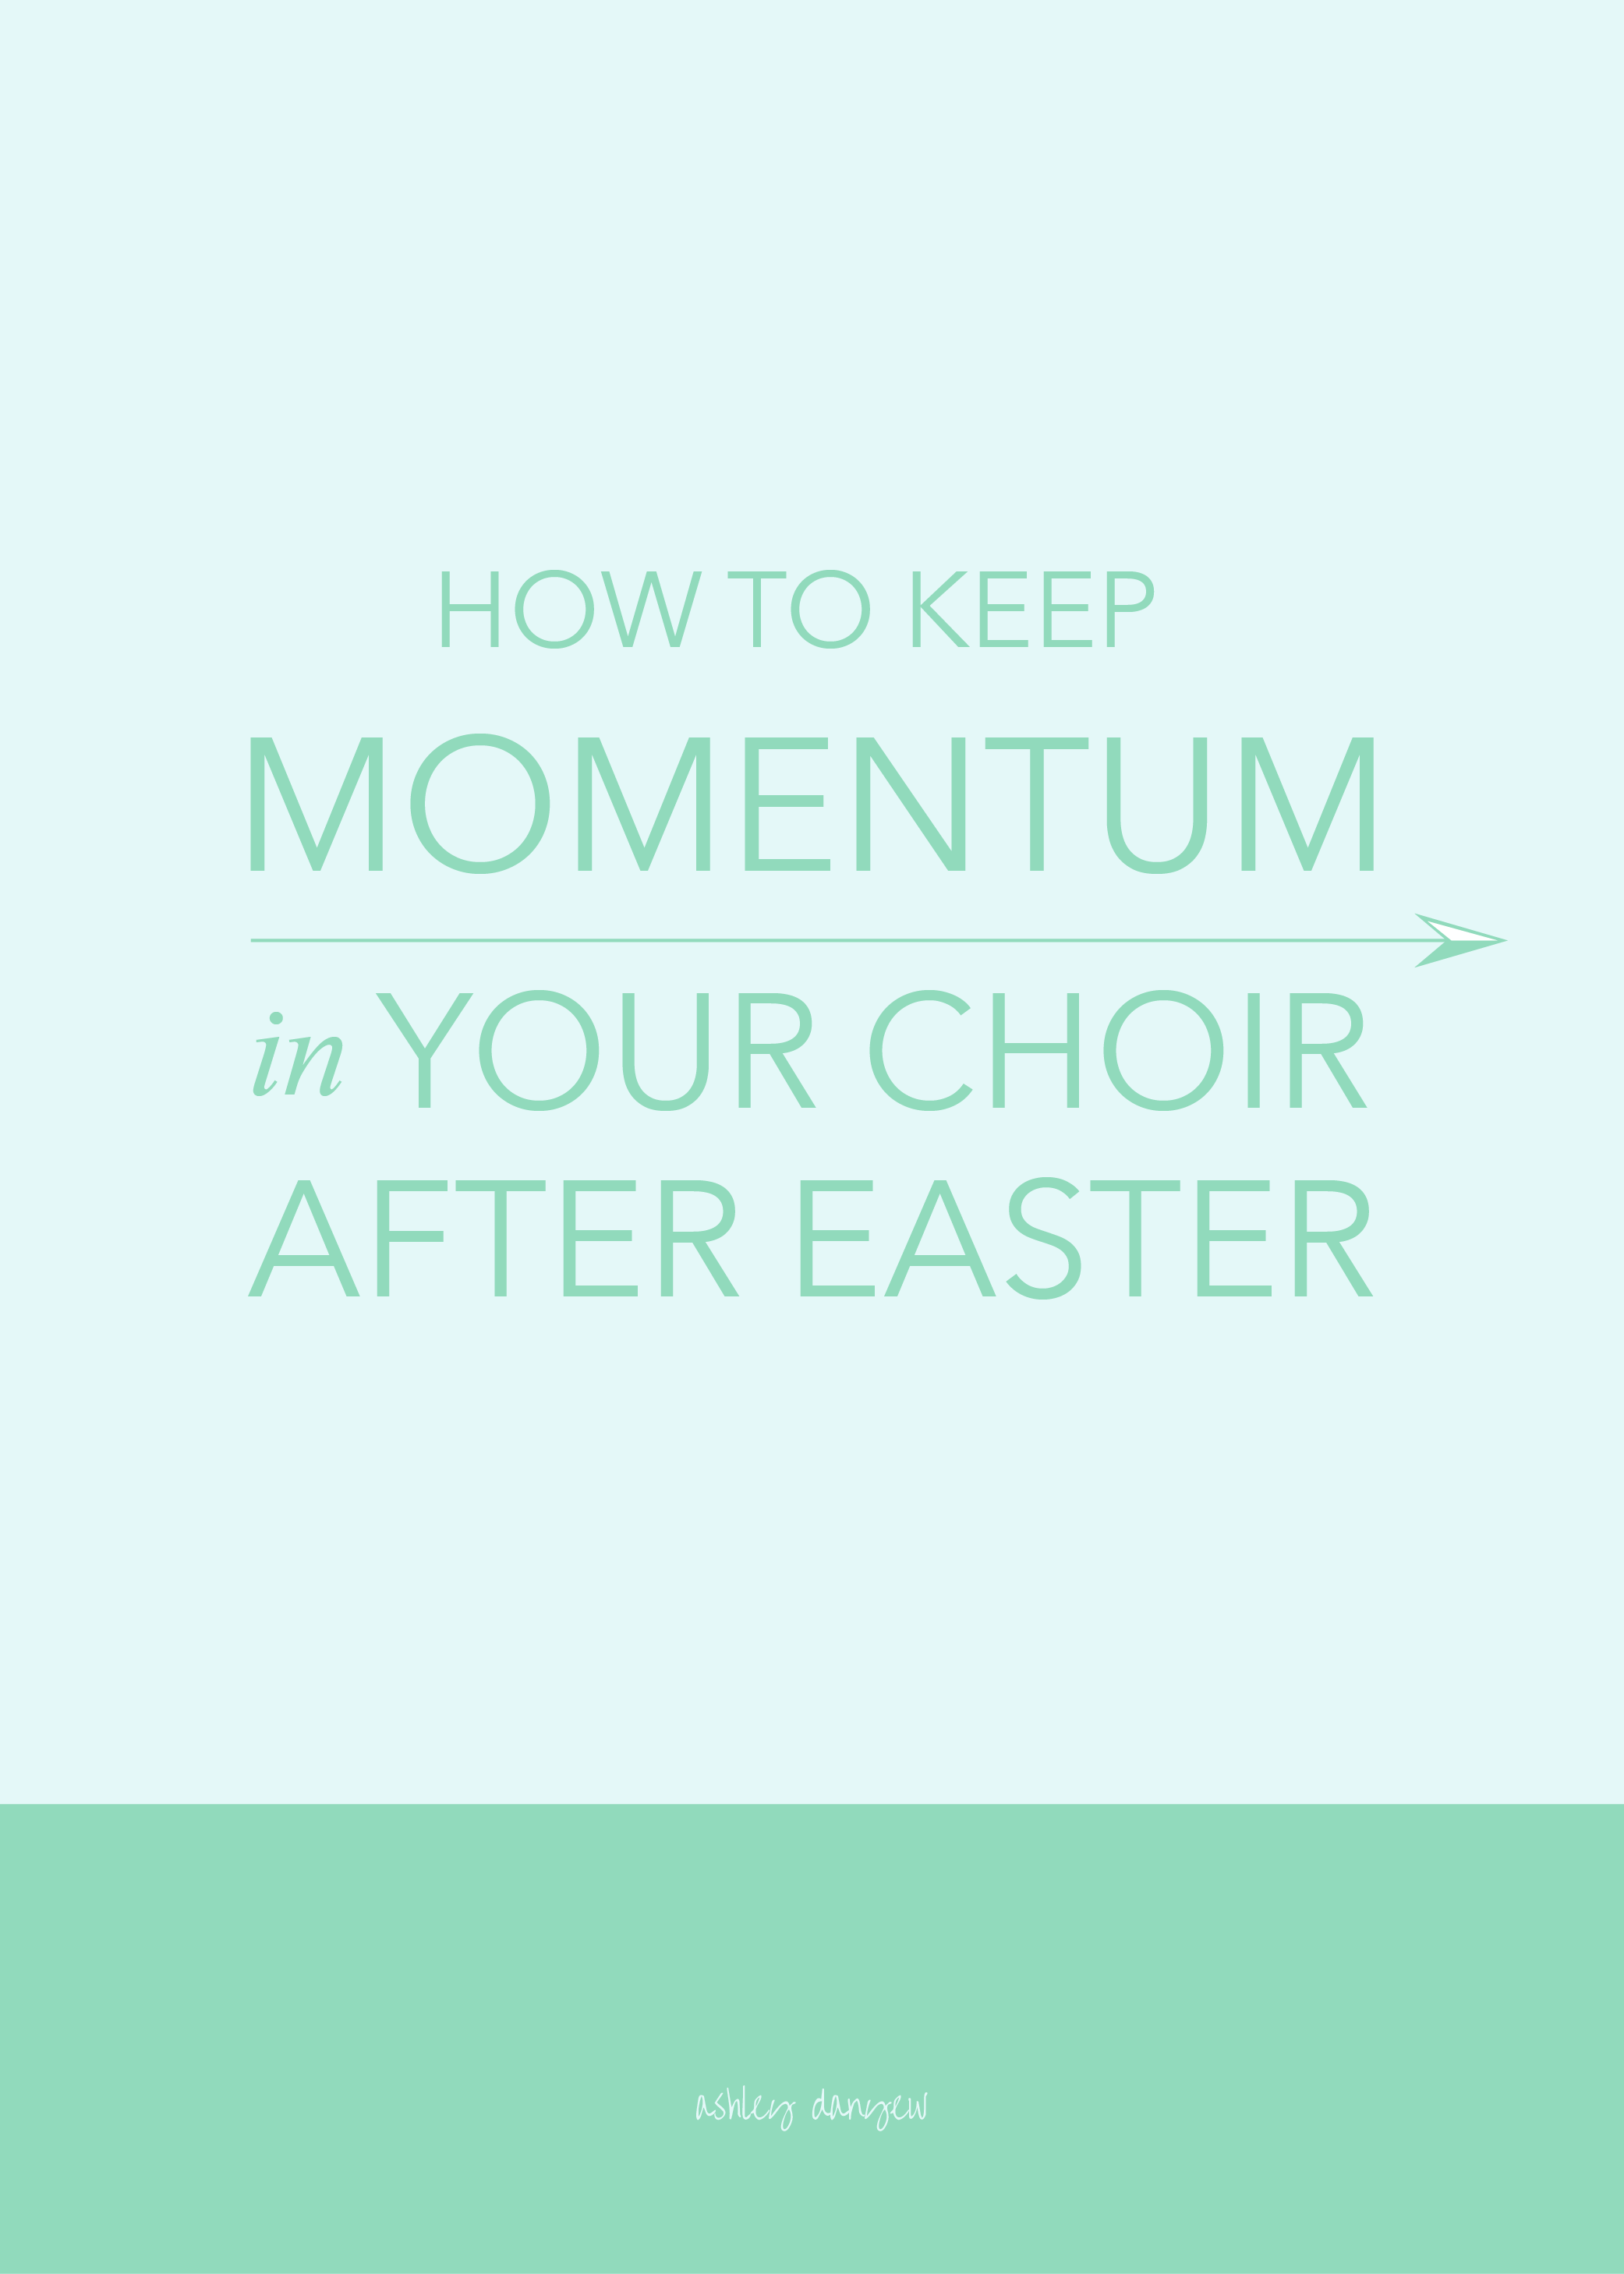 Copy of How to Keep Momentum in Your Choir After Easter